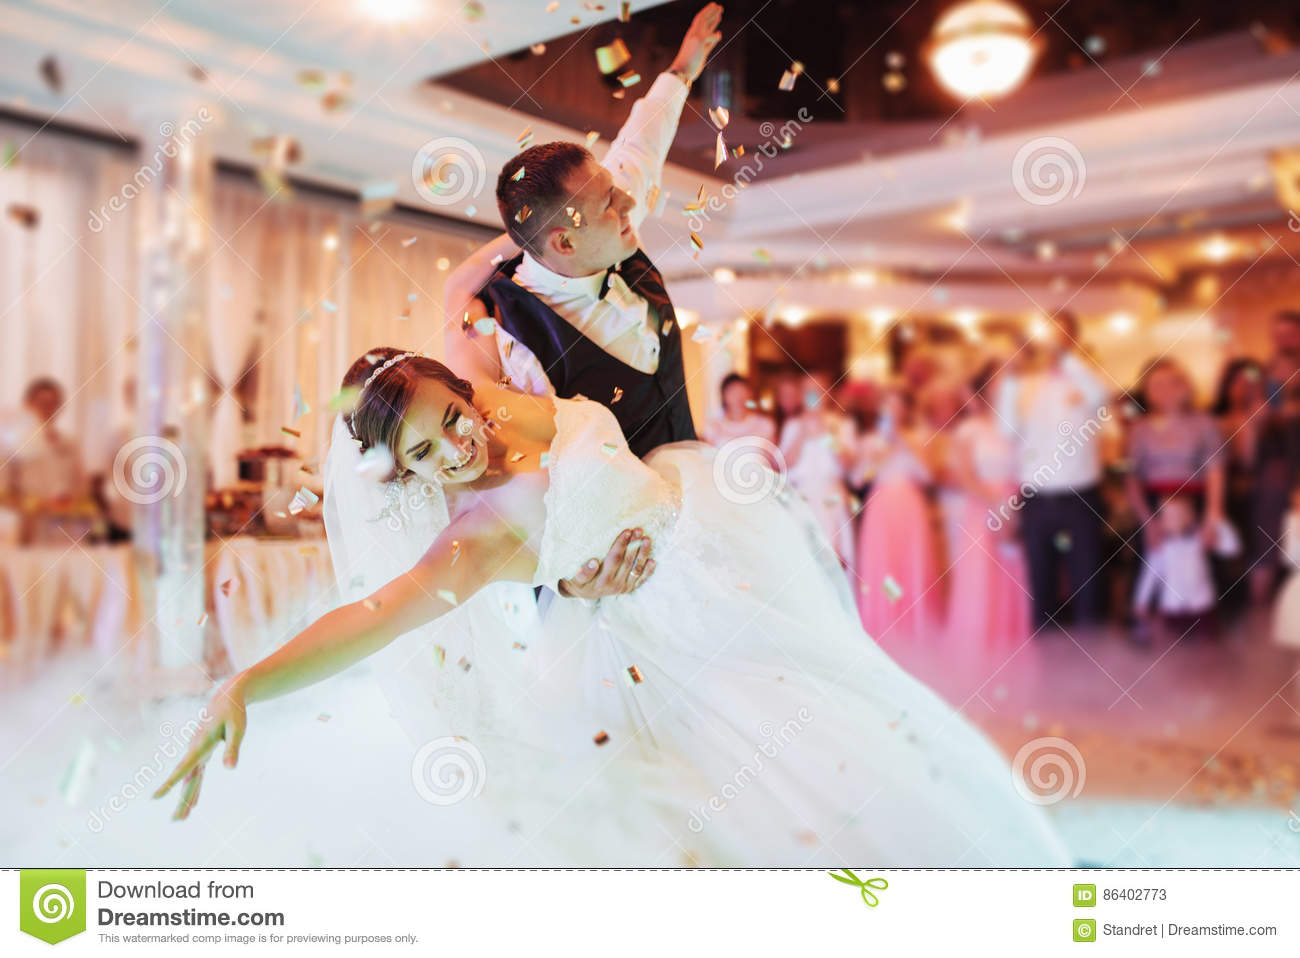 Download Happy Bride And Groom Their First Dance Stock Image - Image of cheerful, cute: 86402773